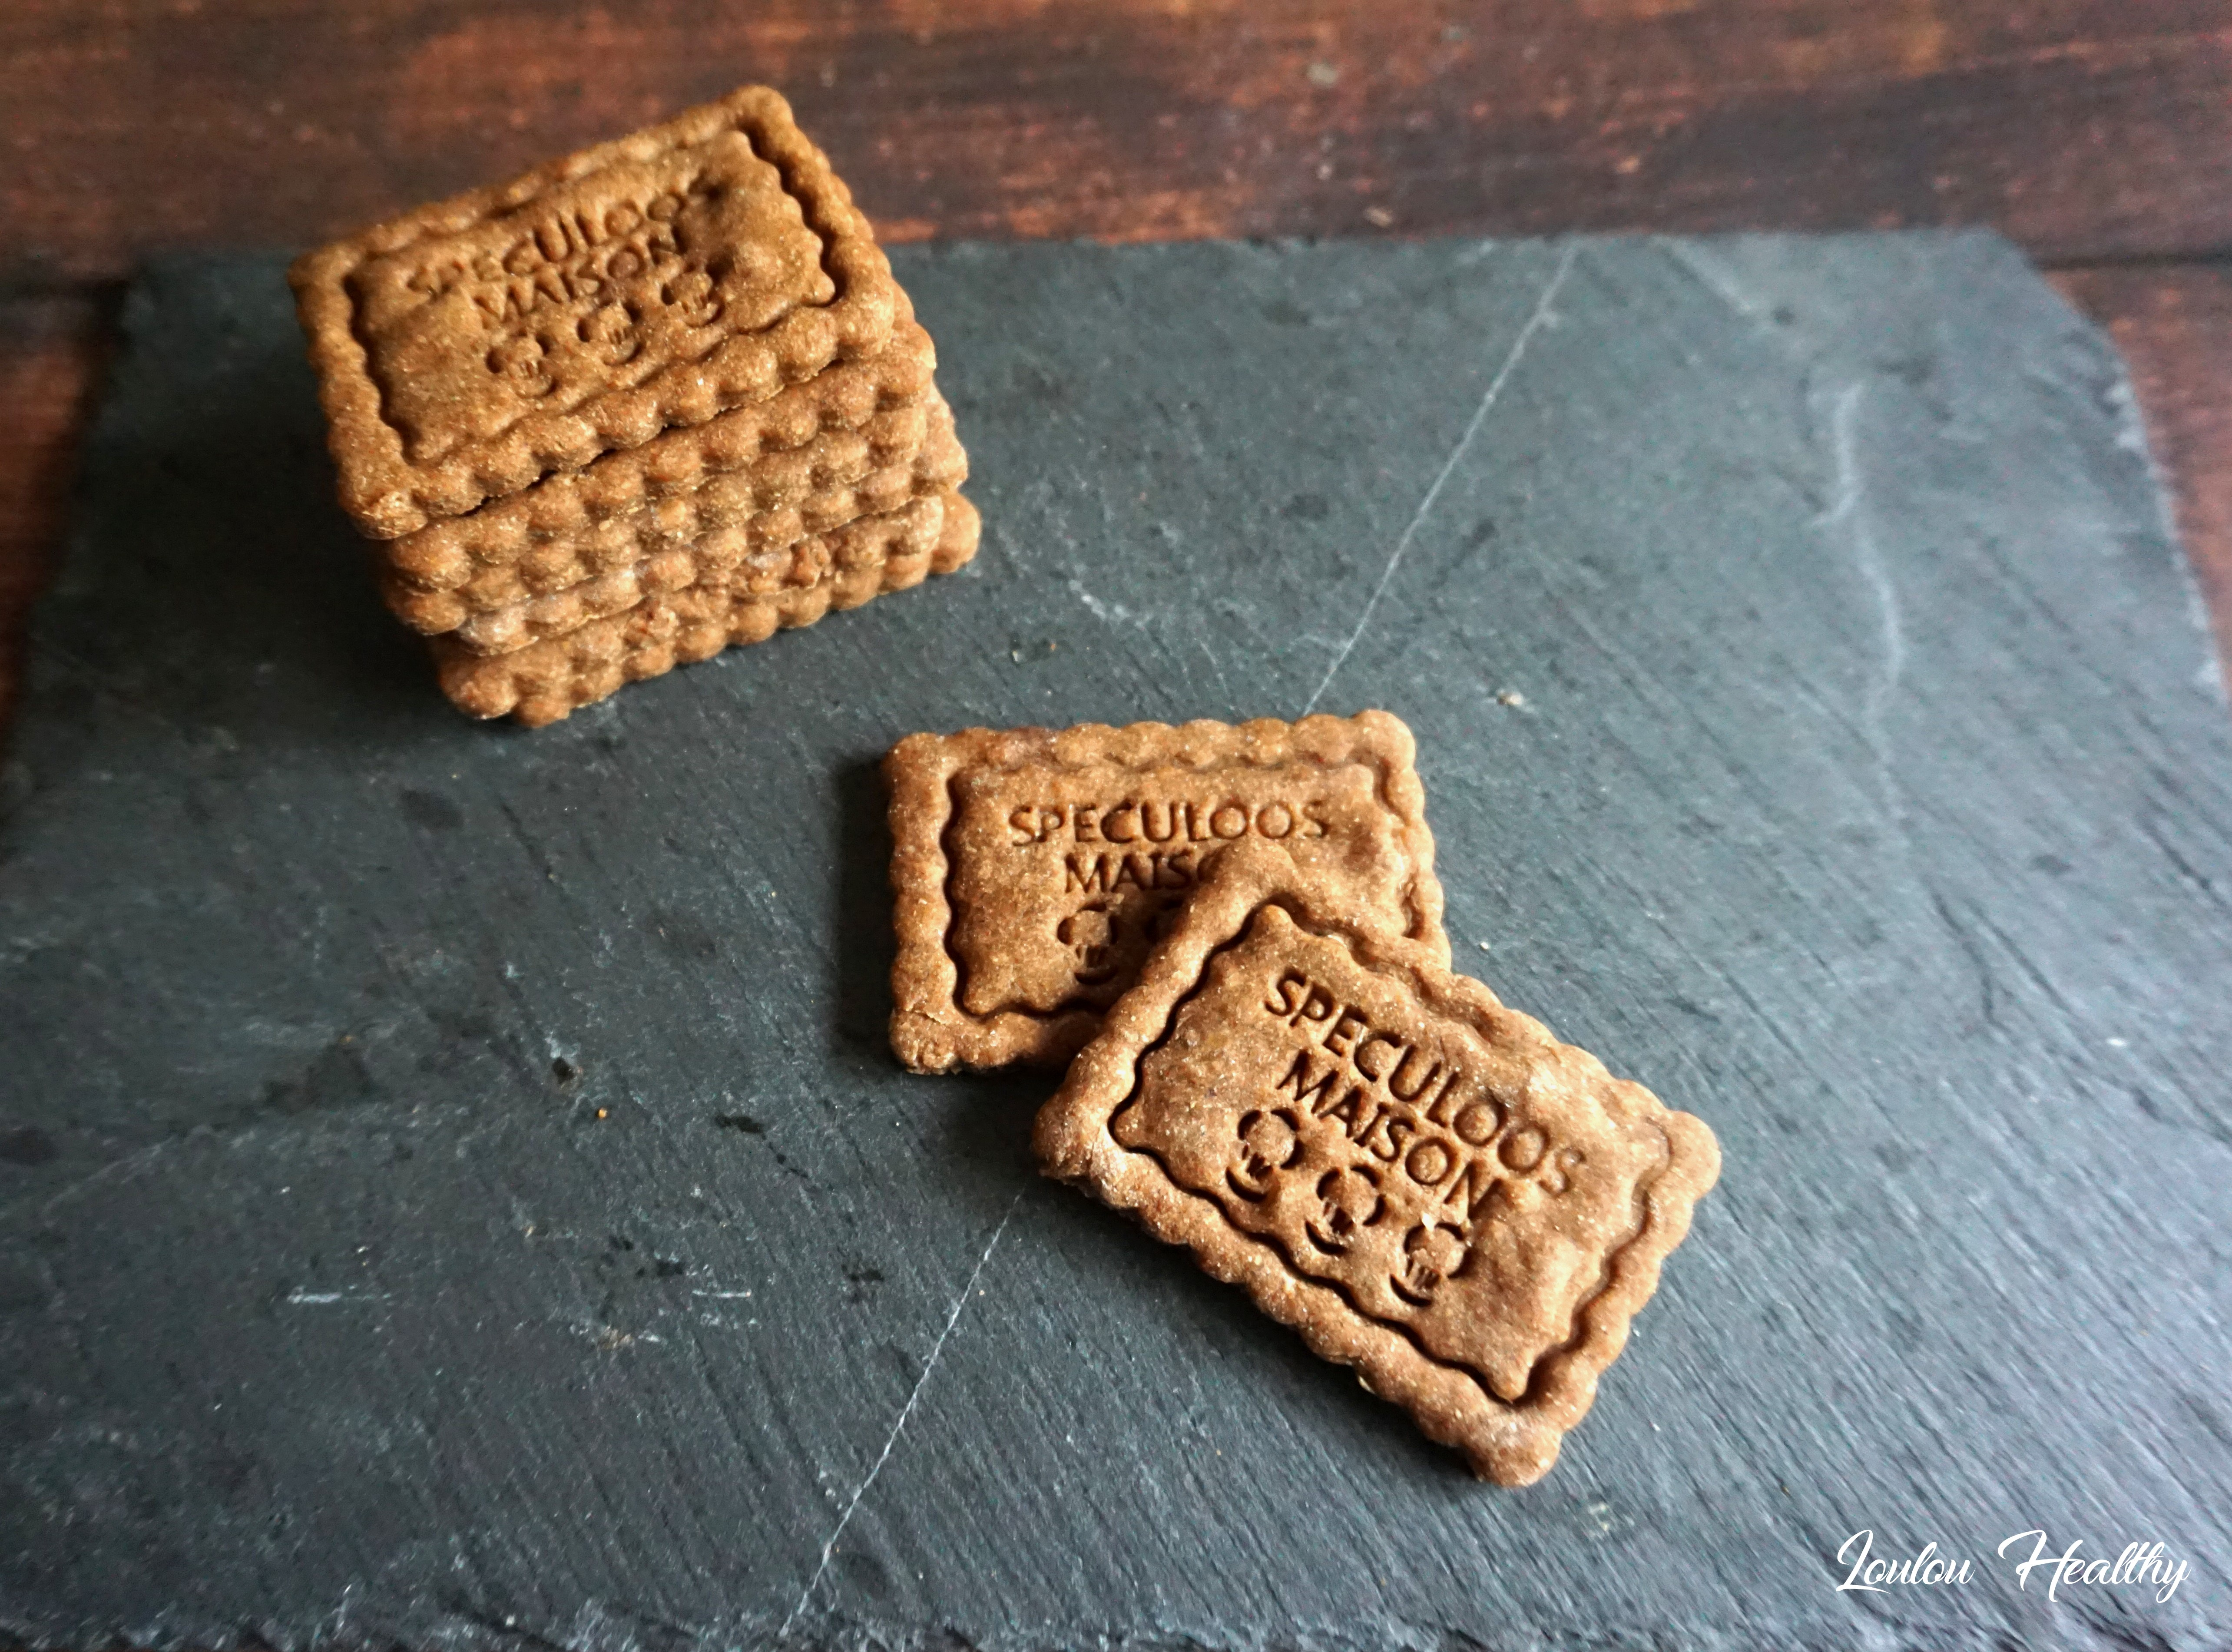 speculoos maison2